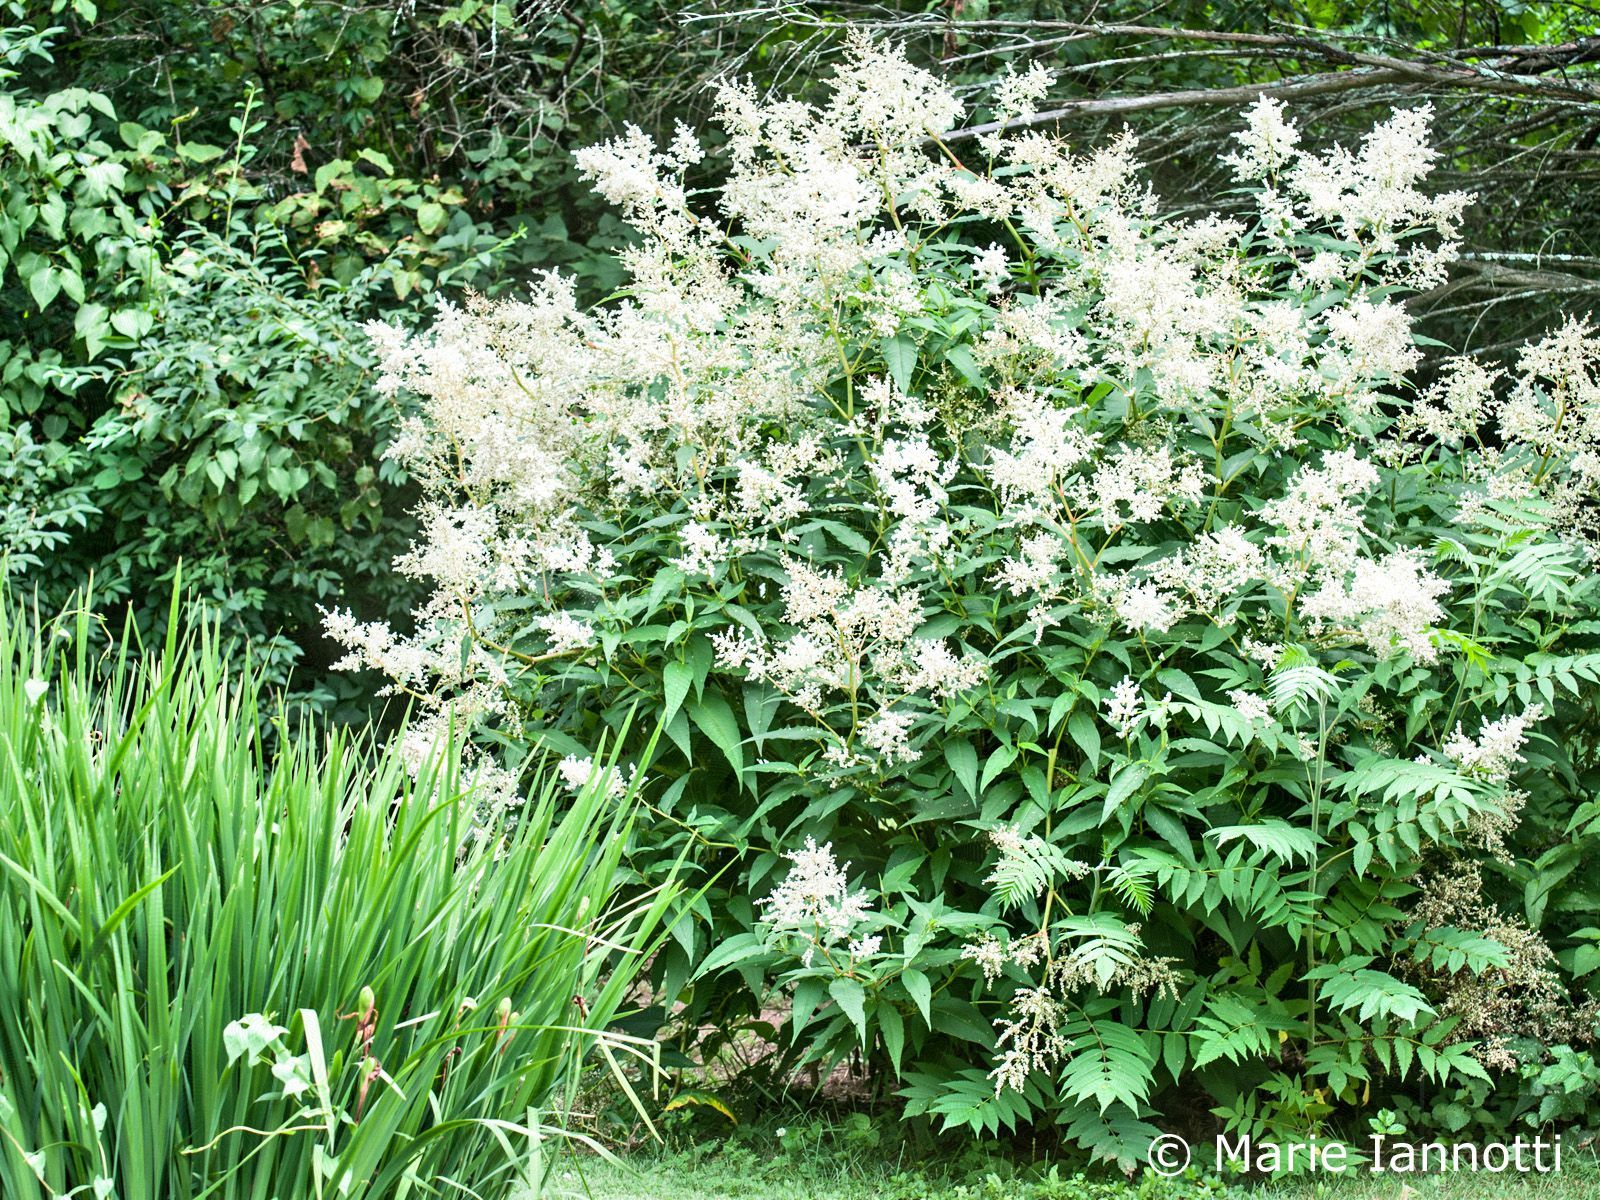 Grow giant fleece flower persicaria polymorpha orchides giant fleece flower persicaria polymorpha a tall showy perennial with large white plumes is widely adaptable and easy to grow here are some tips mightylinksfo